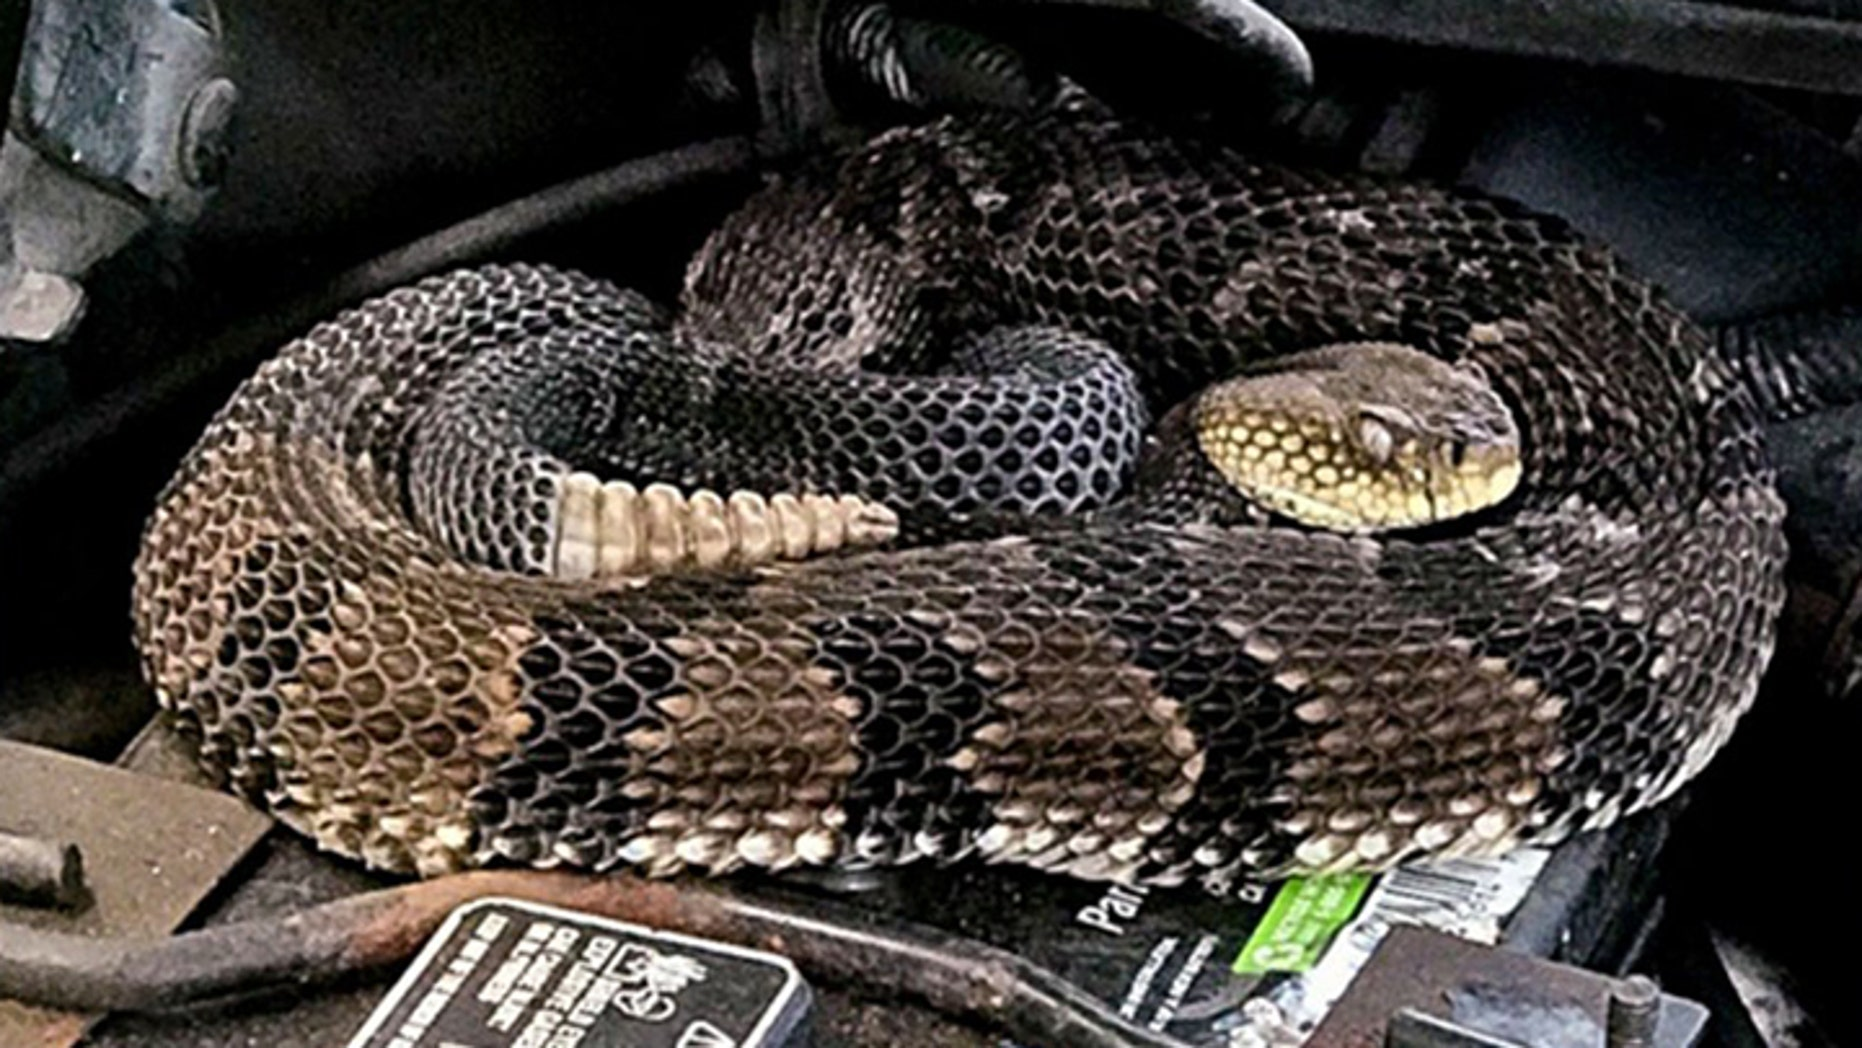 A man jump-starting his car was surprised to find a rattlesnake in his engine.